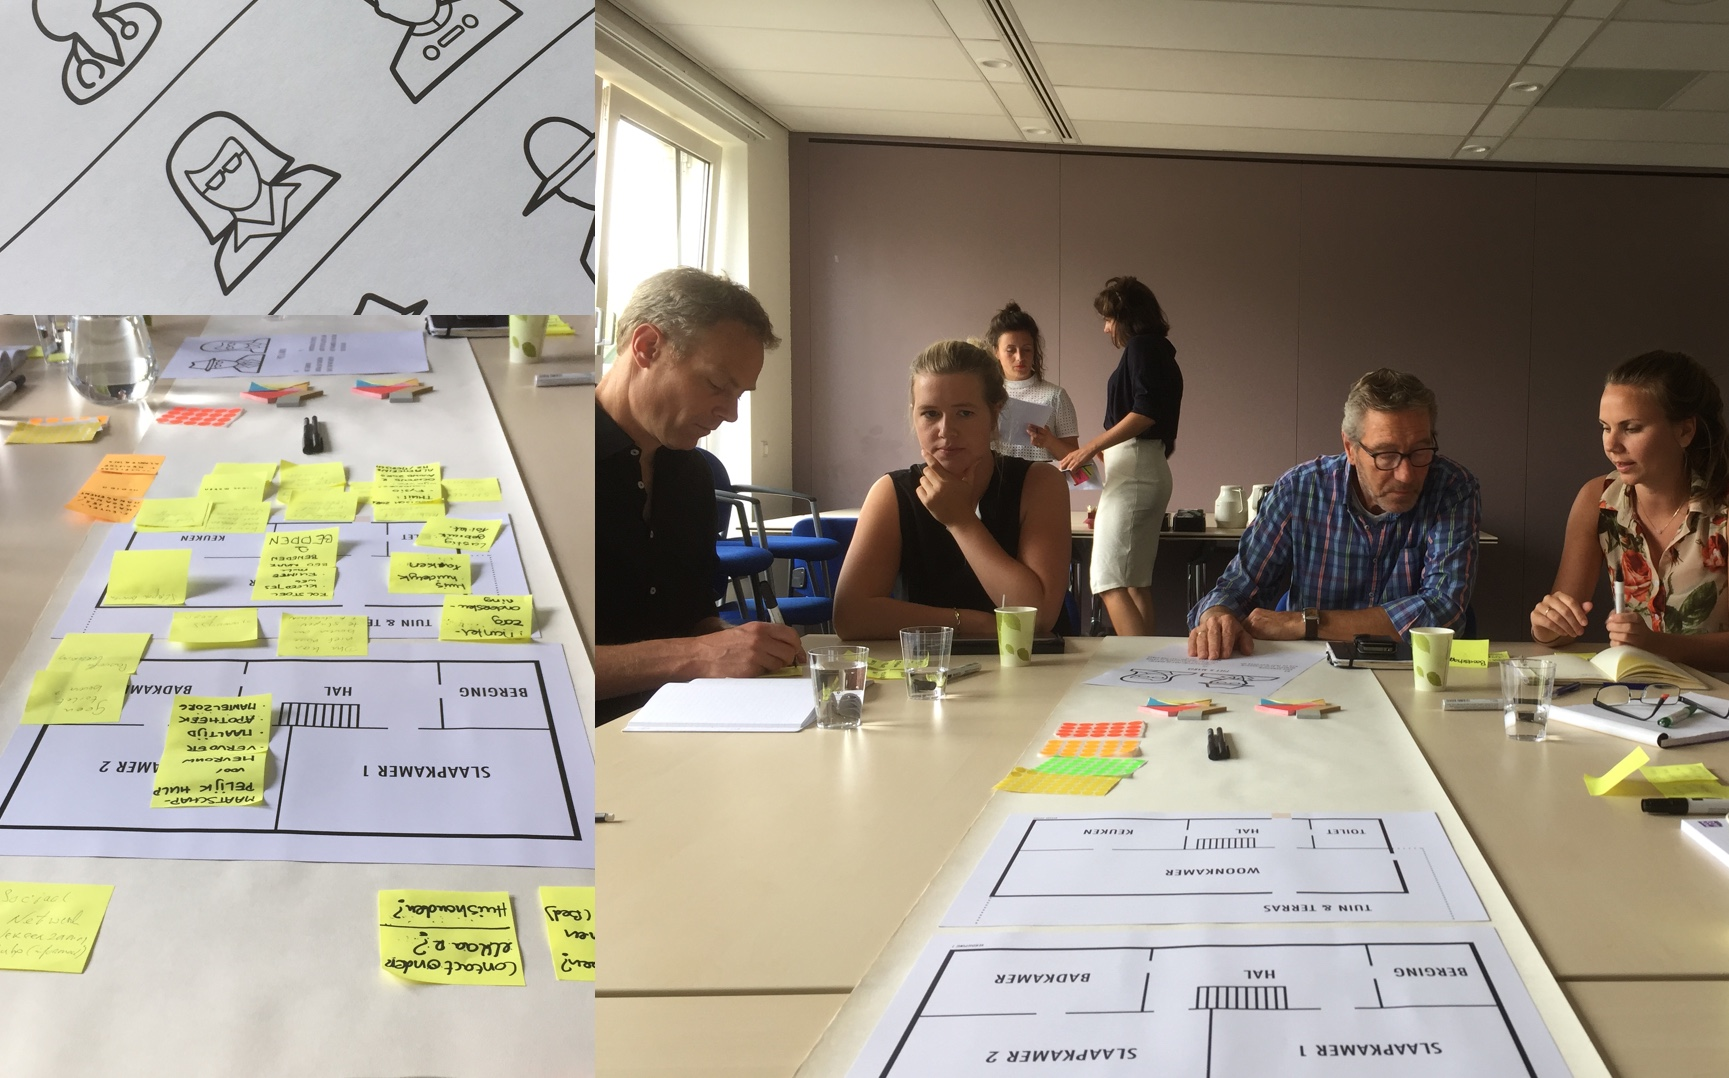 Follow-up workshop about technology augmented living